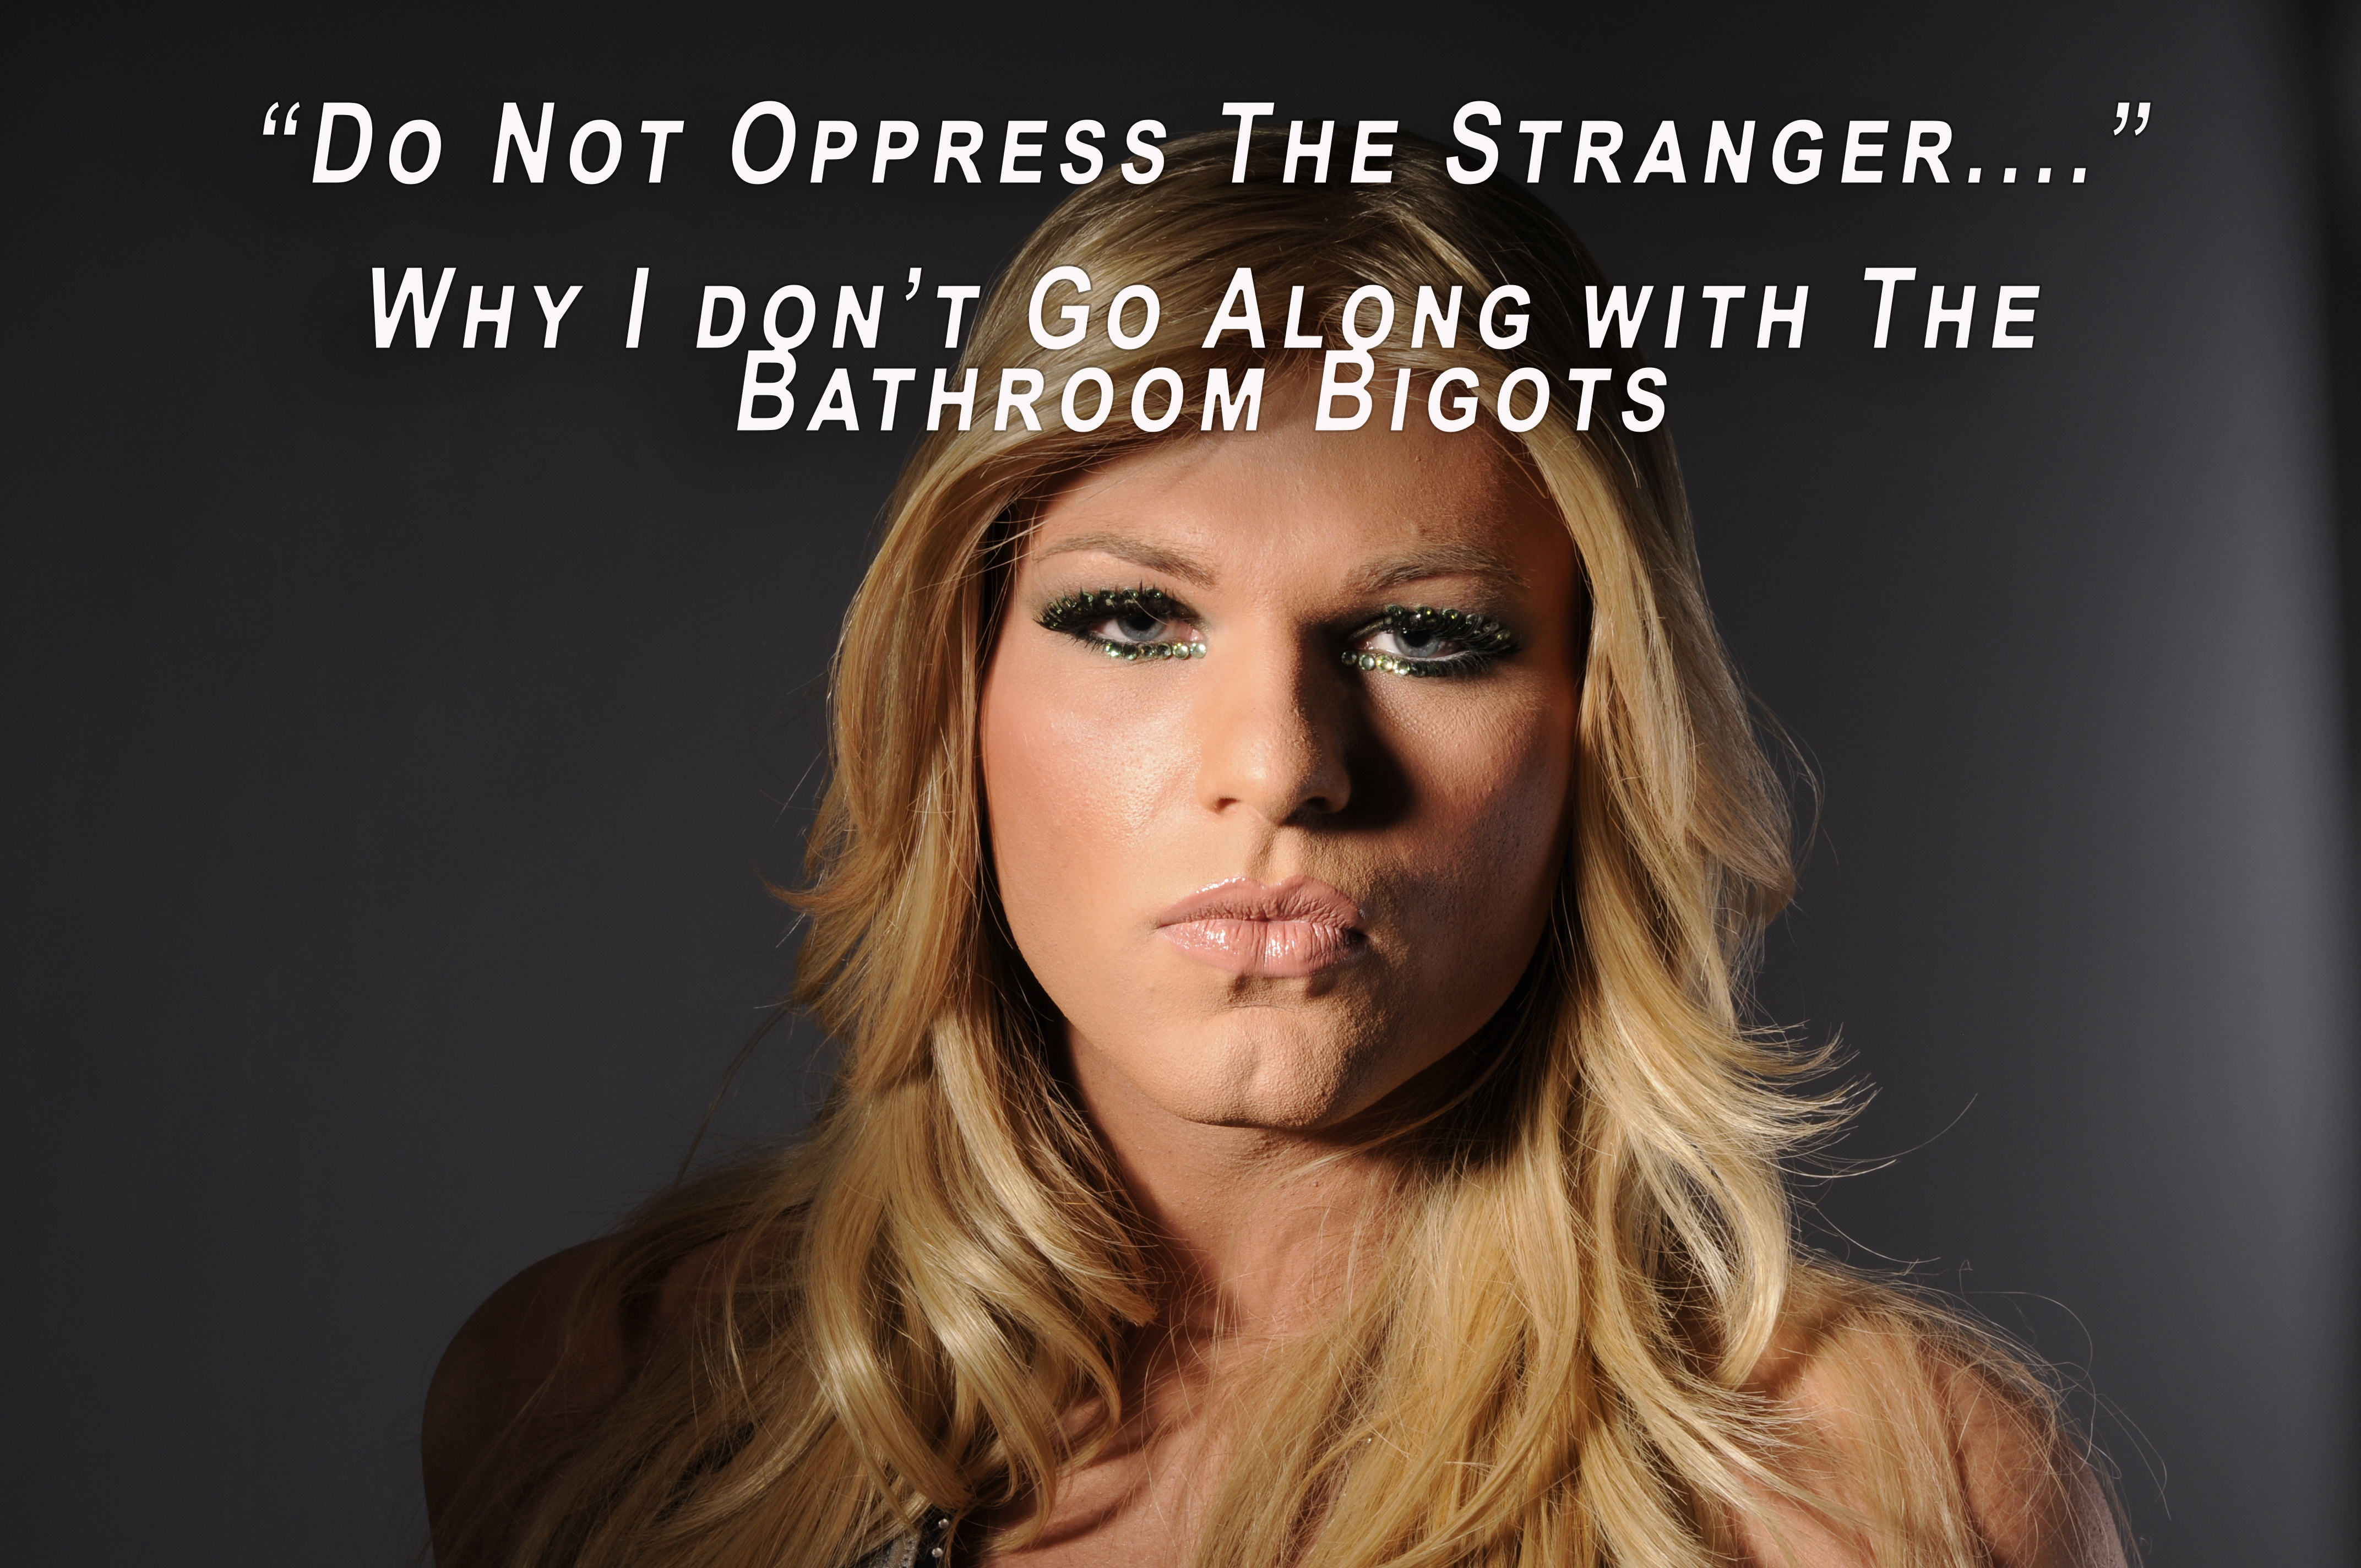 You Shall Not Oppress The Stranger: My Call for Respect and Dignity for Transgendered People